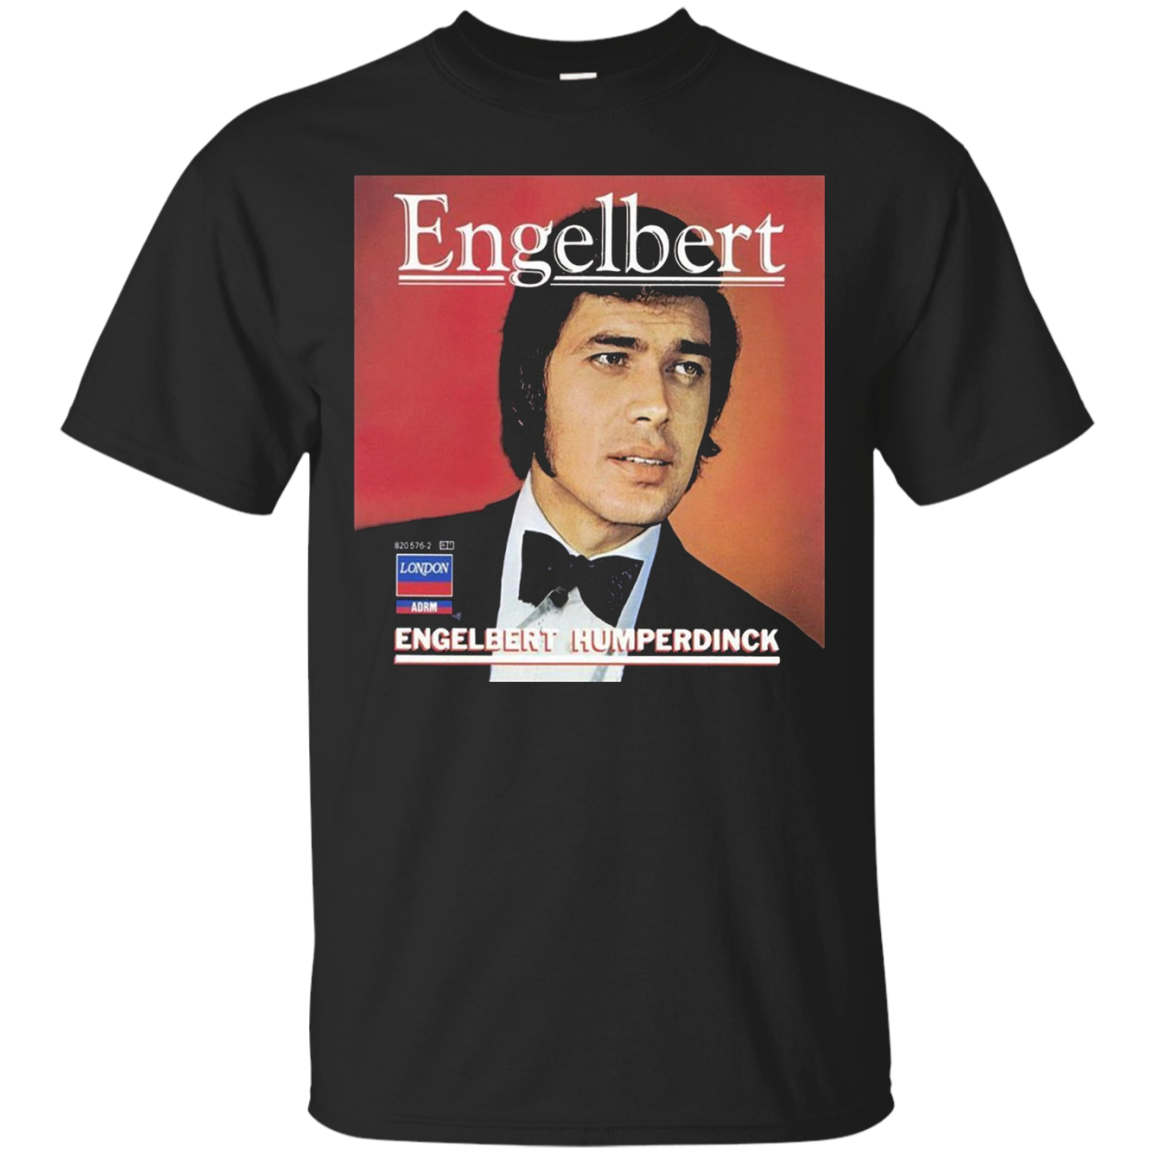 Engelbert Humperdinck Vintage LP Album Cover Tee Shirt